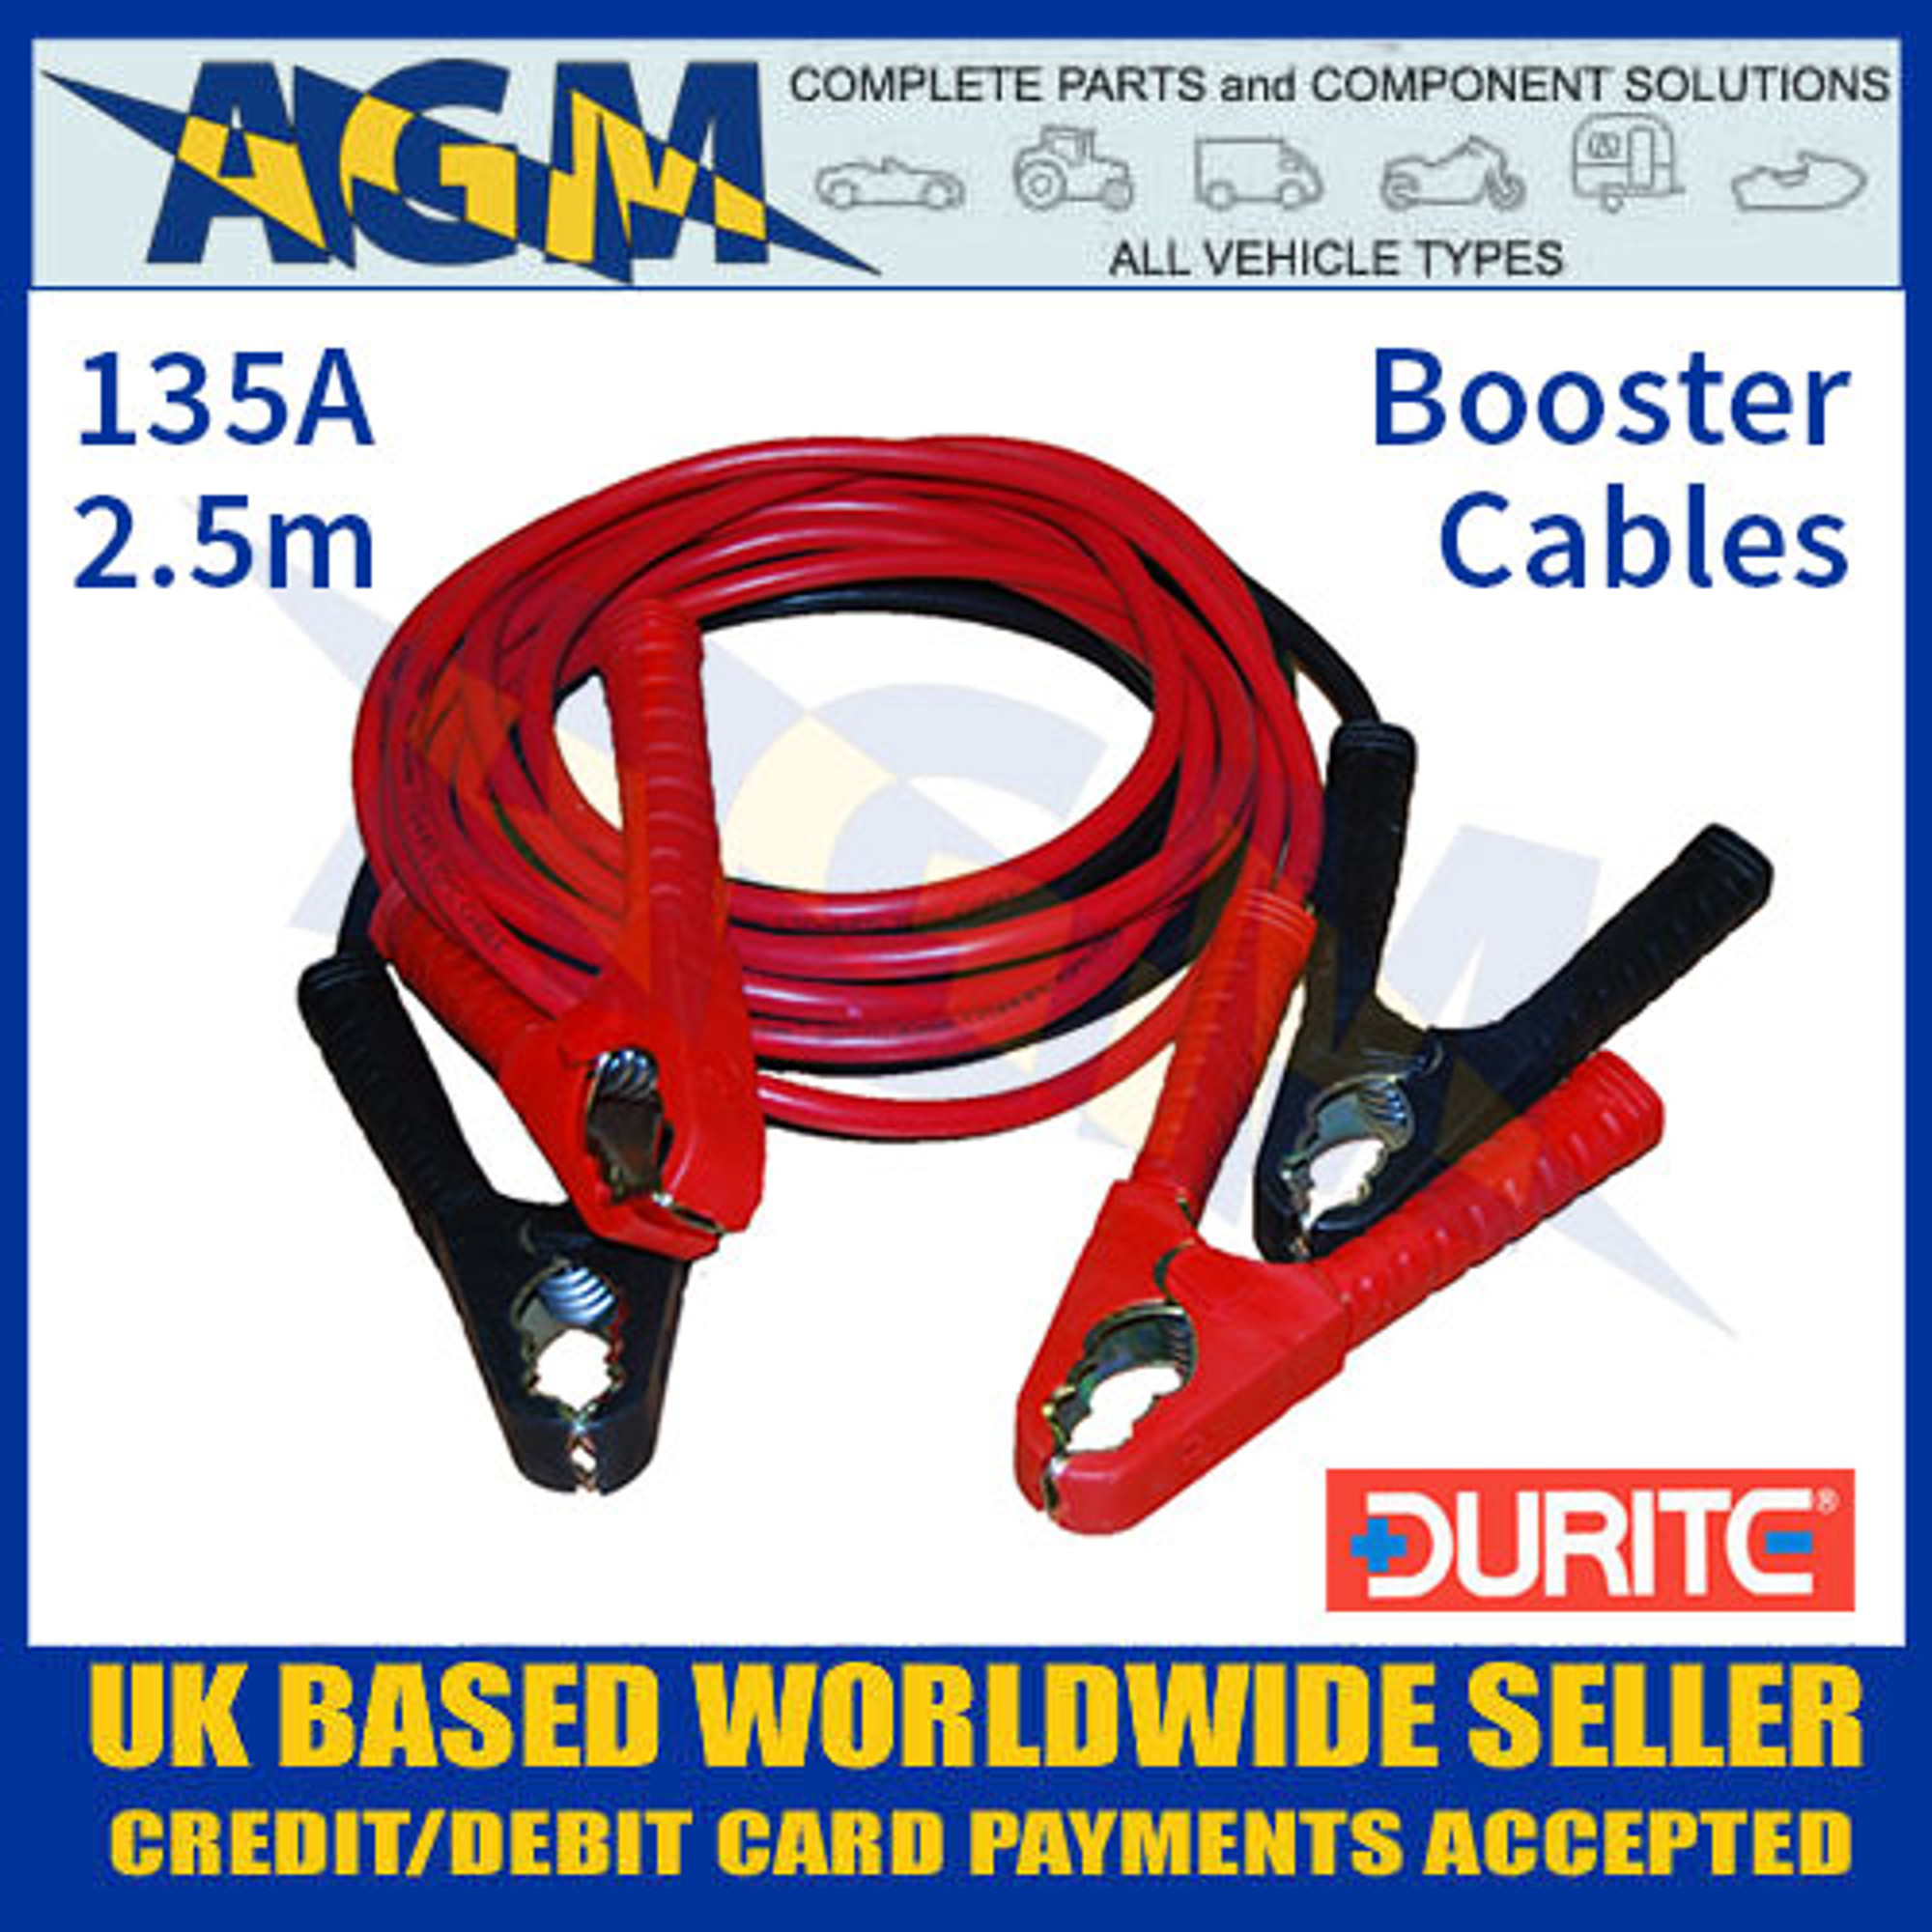 2.5m Booster Cables Durite 0-204-00 Set of Two Slave Leads 135A